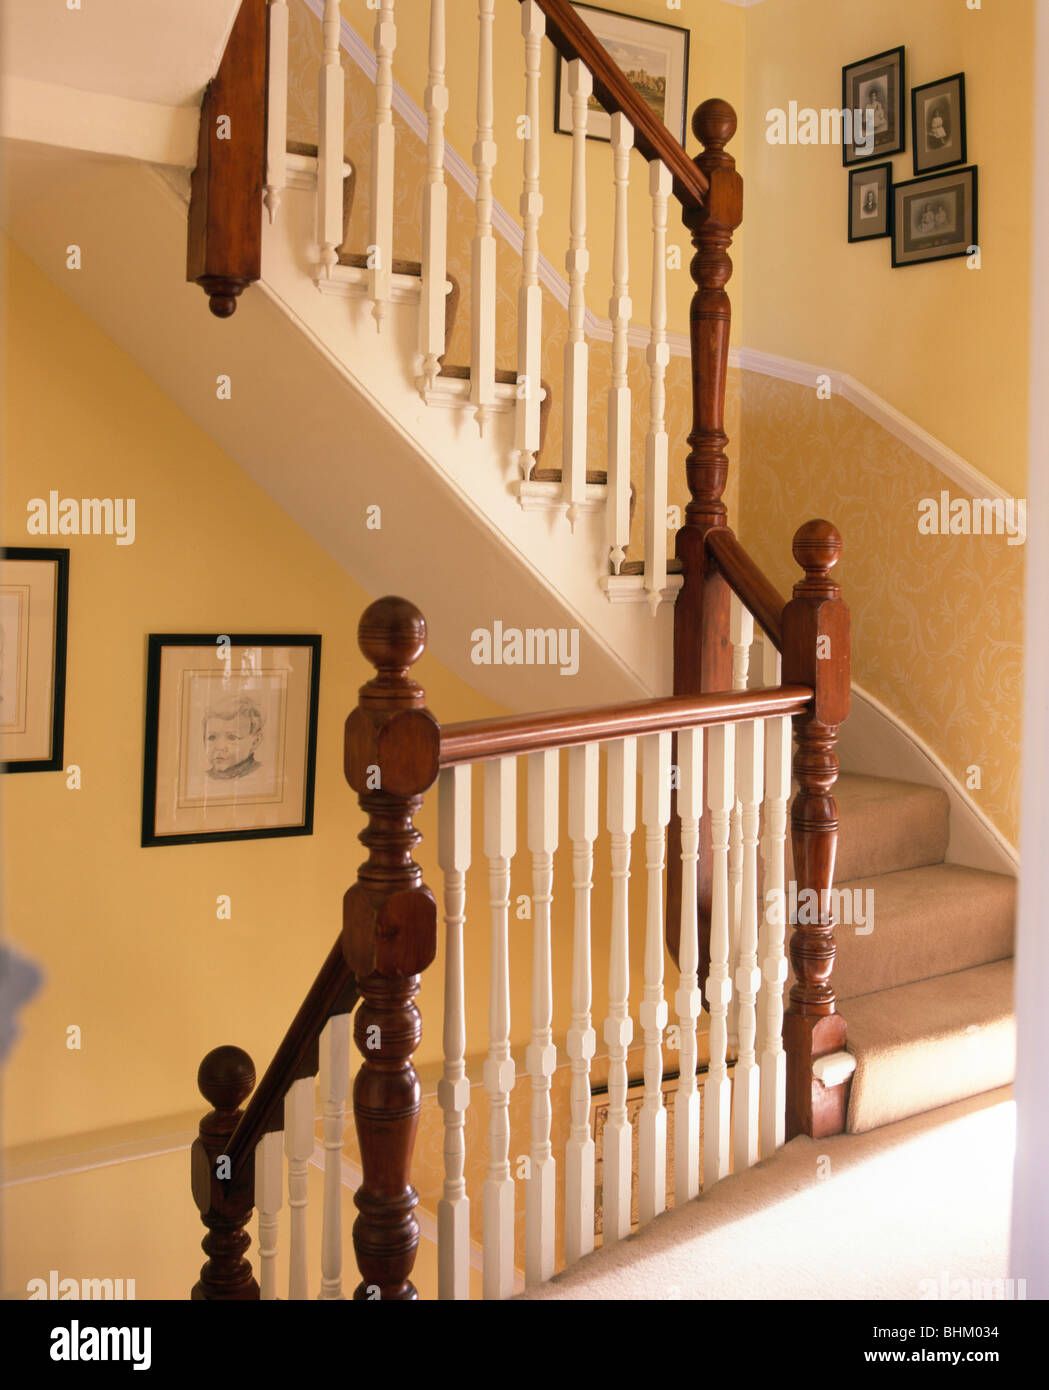 Mahogany Newel Posts And Cream Banisters On Staircase On Traditional Yellow  Landing   Stock Image